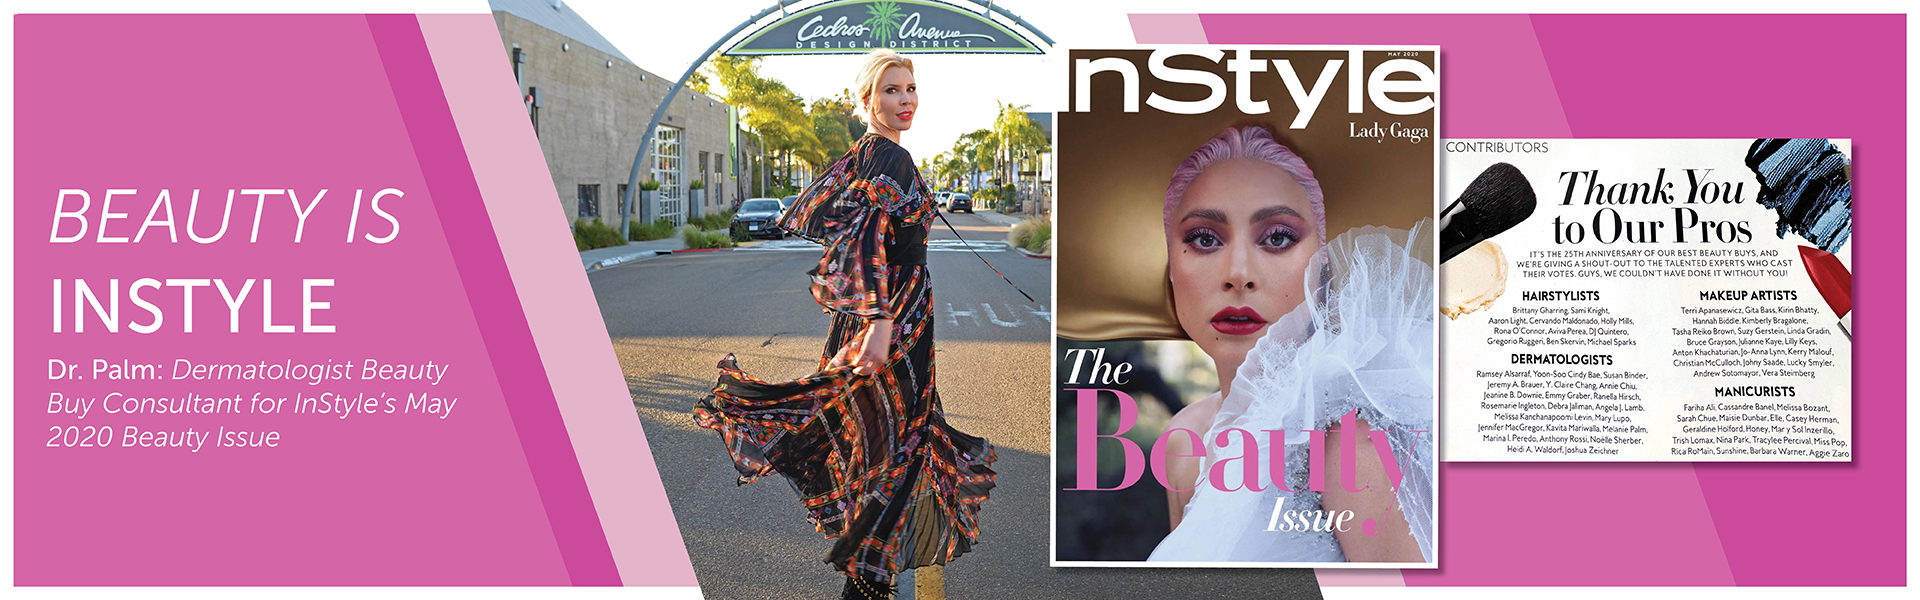 Art Of Skin MD San Diego In Style May 2020 beauty issue with Lady Gaga